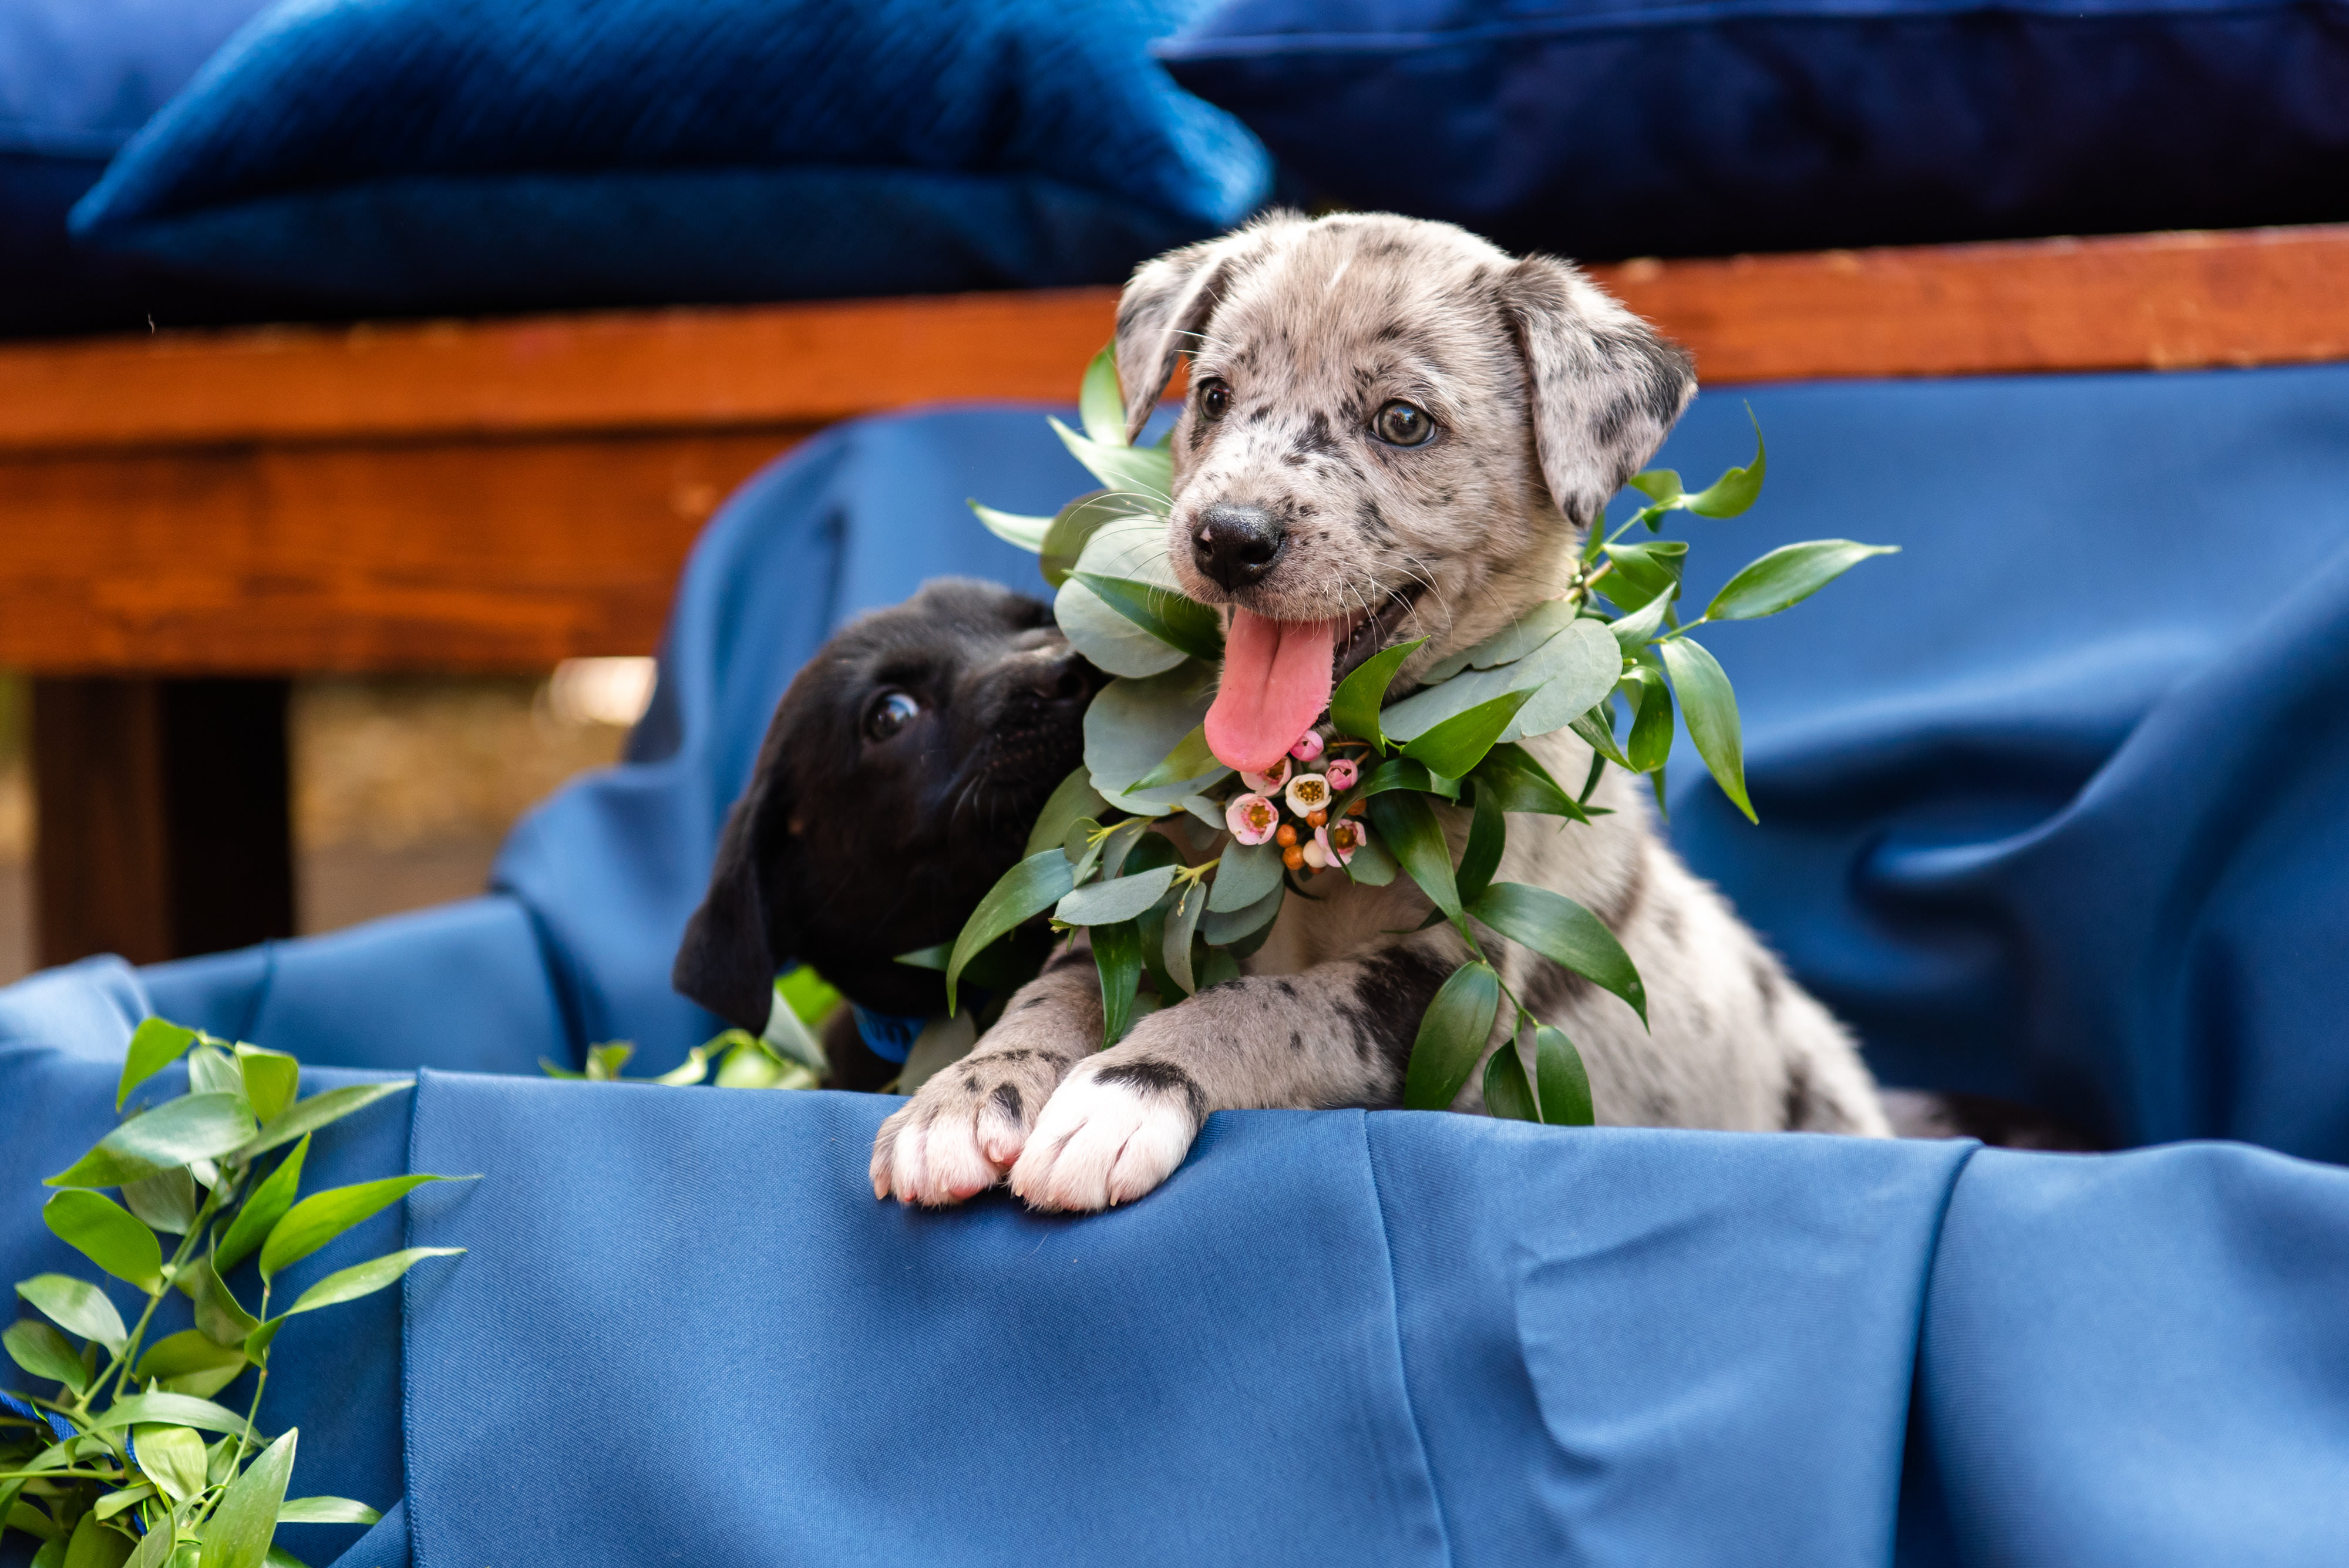 Grey and White Speckled Puppy, Black Puppy with Greenery and Floral Collars and Blue Linen Backdrop | Tampa Bay Wedding Photographer Caroline and Evan Photography | Florist Monarch Events and Design | Designer and Planner Southern Glam Weddings & Events | Pet Coordinators FairyTale Pet Care